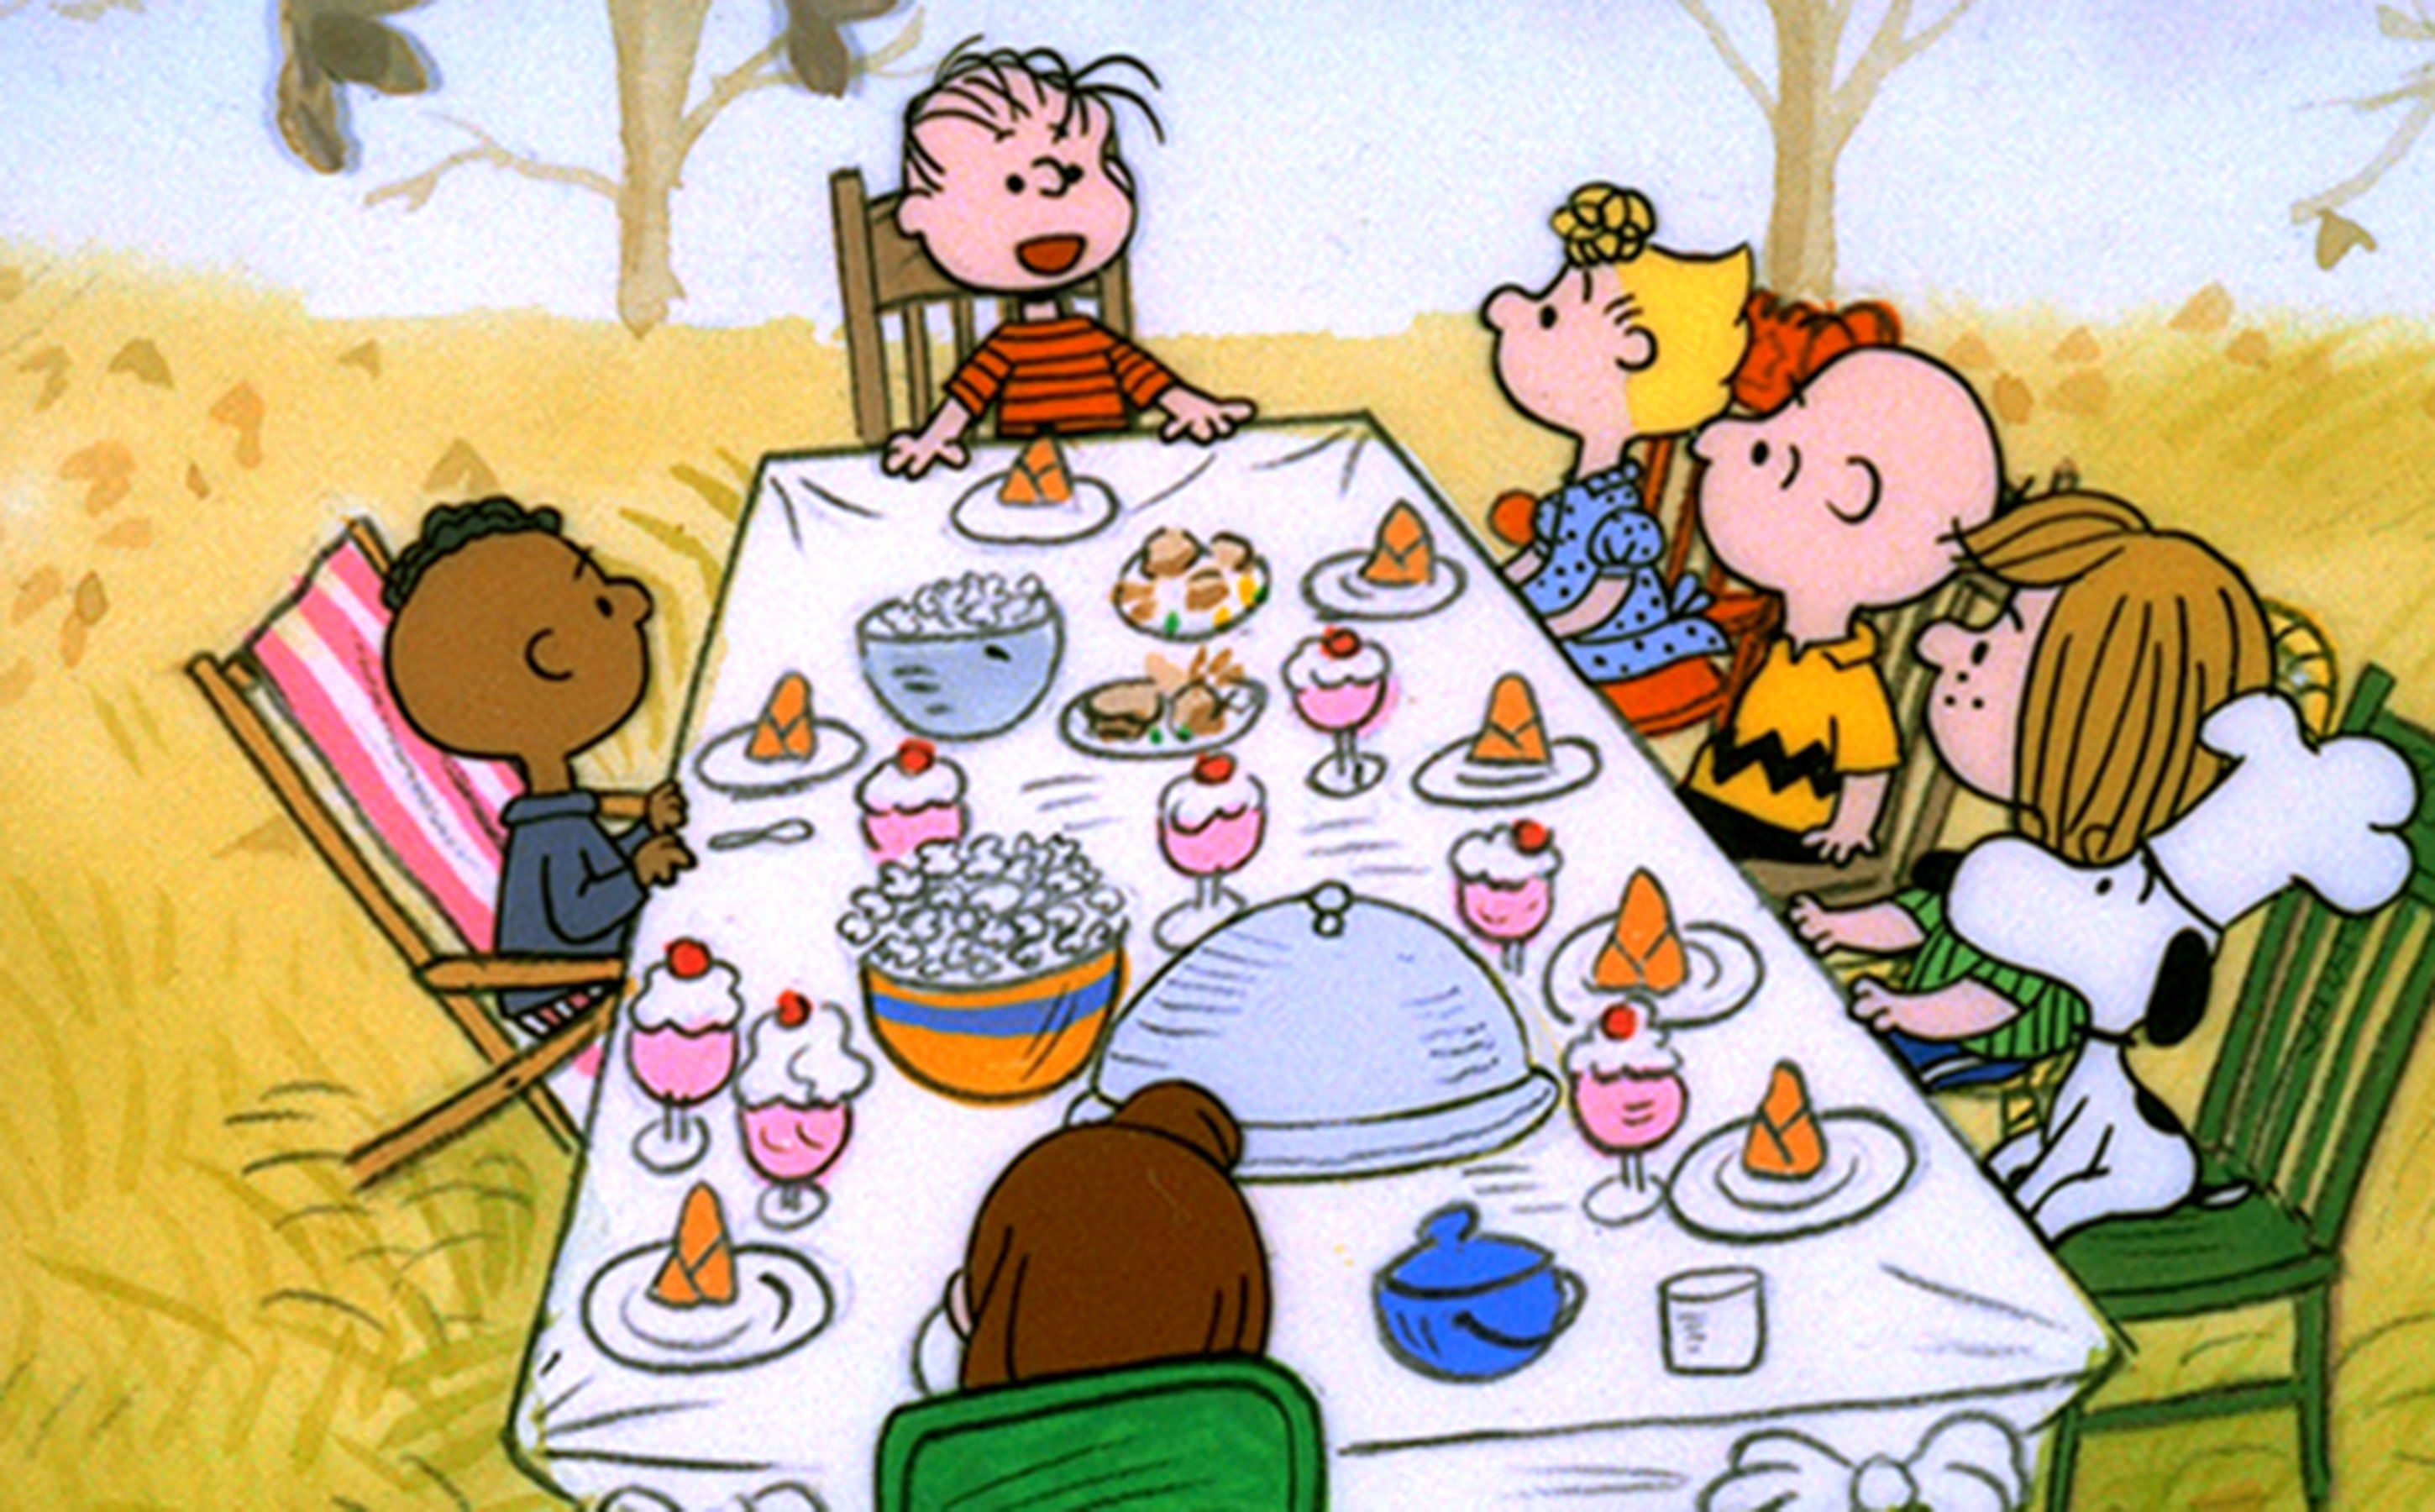 A Charlie Brown Thanksgiving: When and where to watch this.